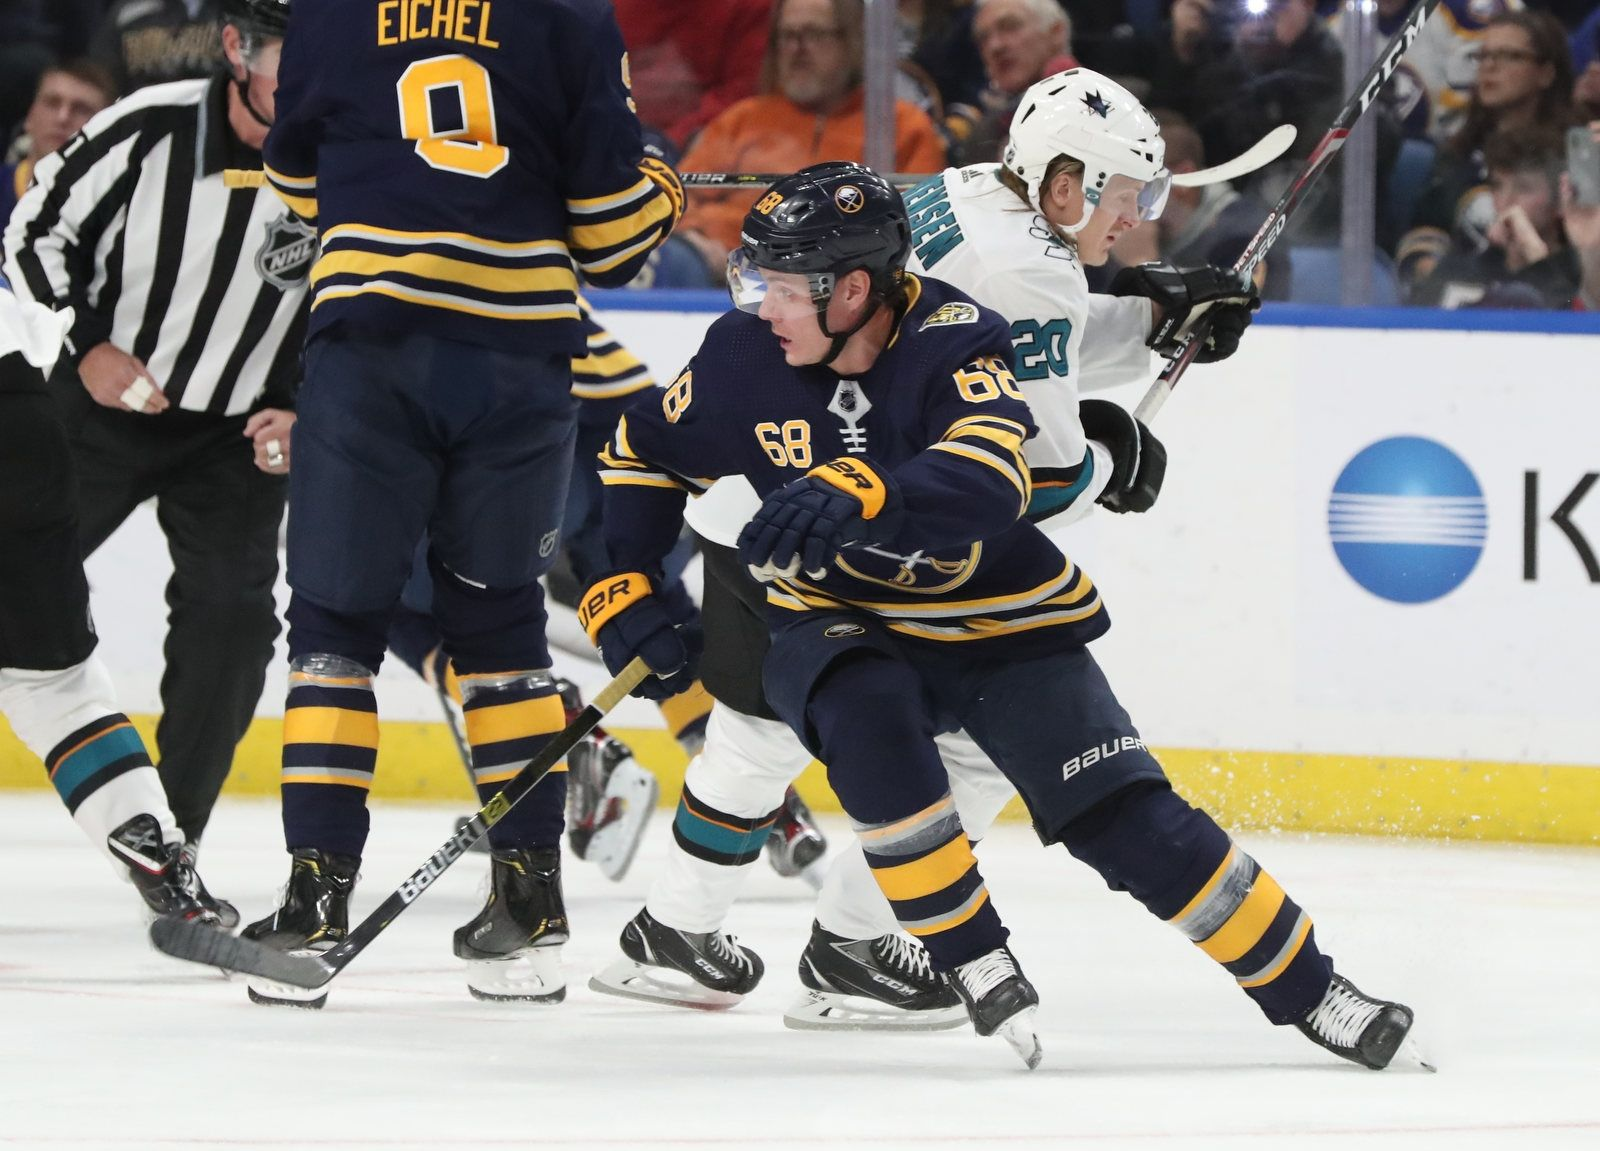 Buffalo Sabres right wing Victor Olofsson (68) battles San Jose Sharks left wing Marcus Sorensen (20) for the puck during the first period.